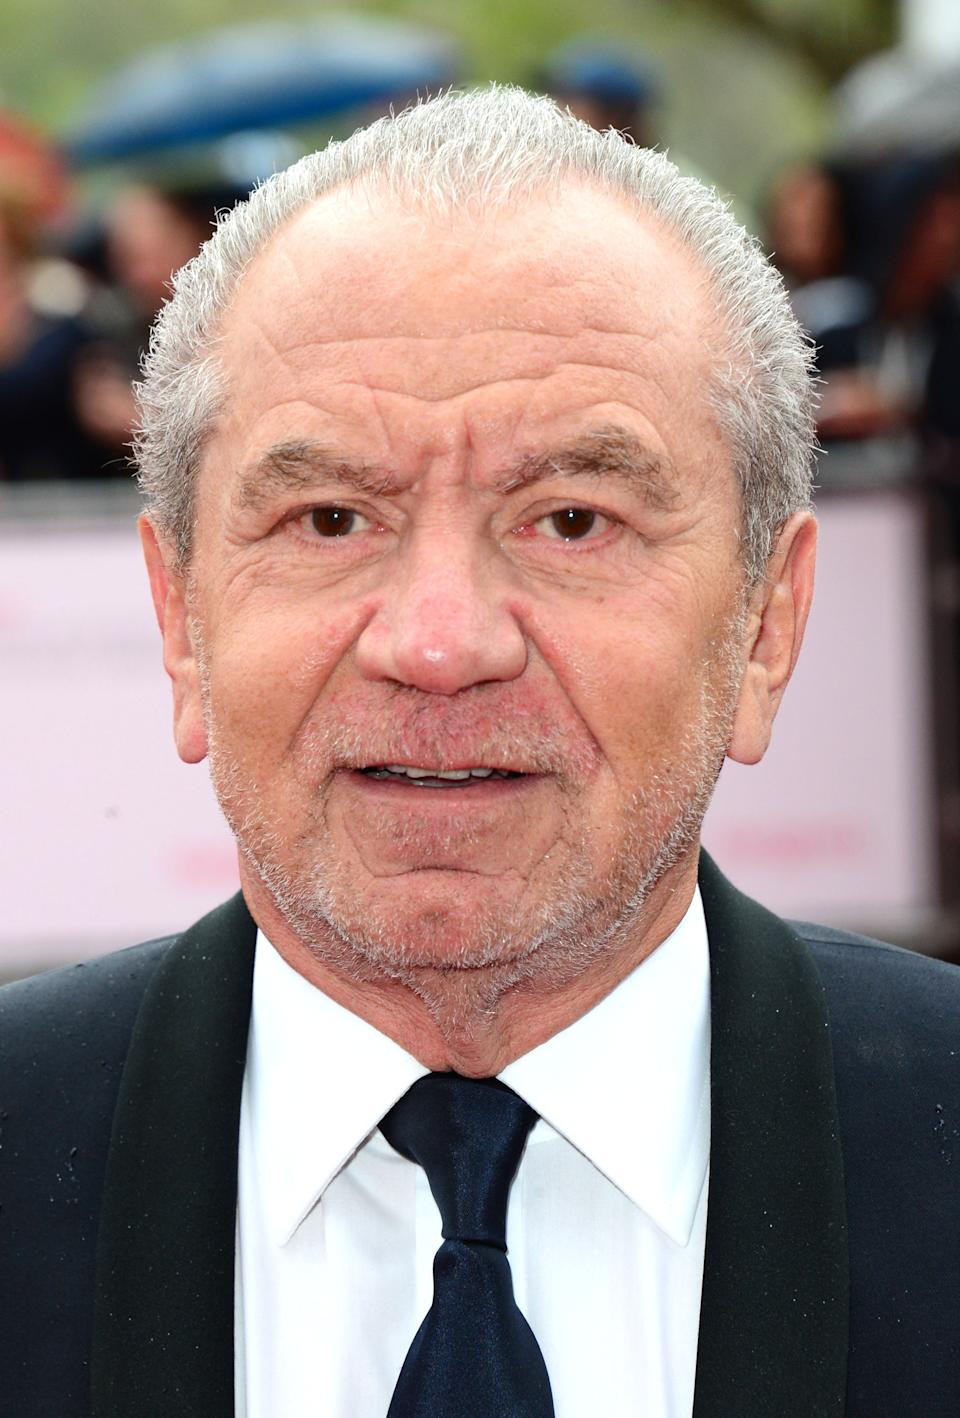 Sir Alan Sugar at the Arqiva British Academy Television Awards BAFTA in London, May 12th, 2013. (Photo by Jon Furniss/Invision/AP)